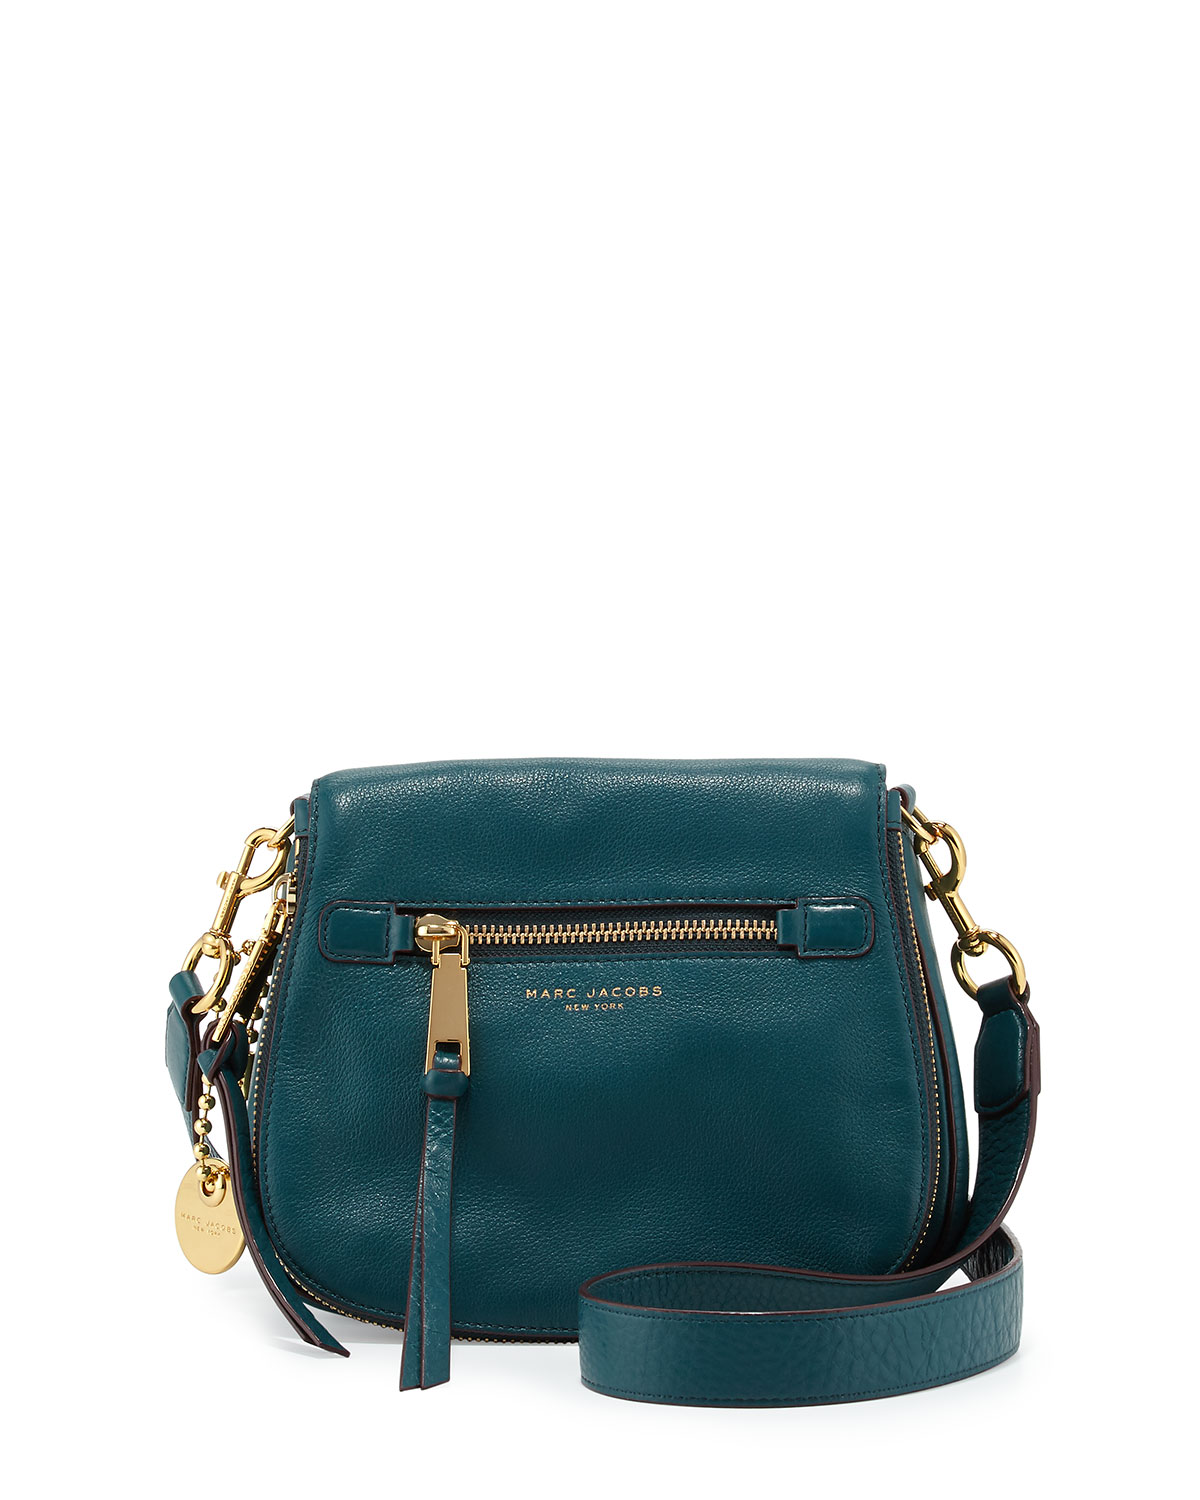 Marc Jacobs Recruit Small Leather Saddle Bag, Teal   Neiman Marcus 2dcacf07b1